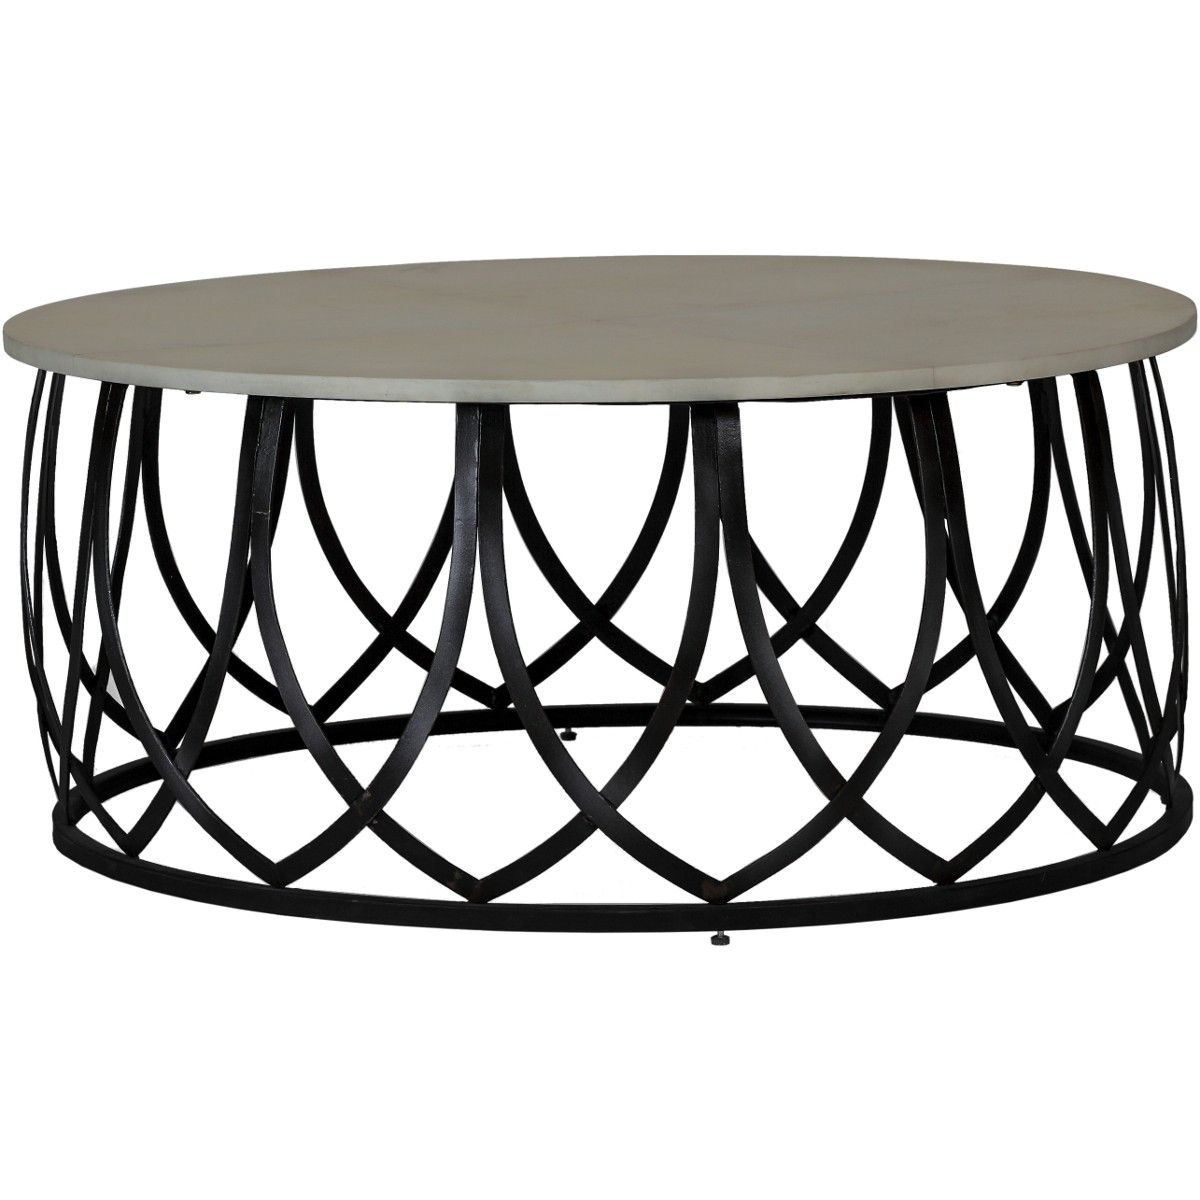 We Created Our Tulip Coffee Table As A Statement Piece For Any